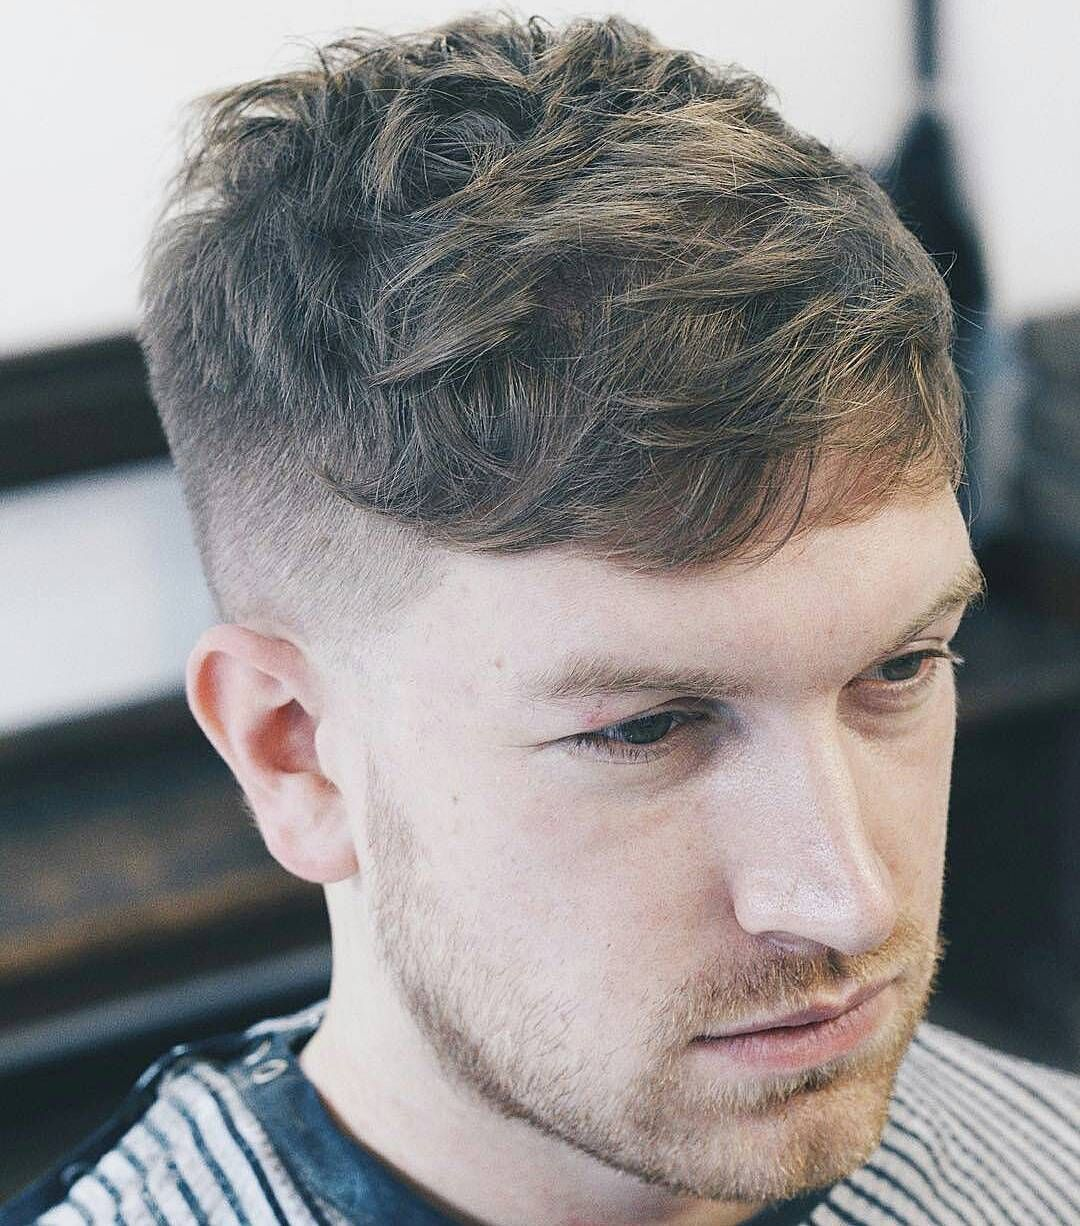 Awesome 45 trendy short haircuts for men be yourself check more at awesome 45 trendy short haircuts for men be yourself check more at httpmachohairstylestrendy short haircuts for men solutioingenieria Image collections